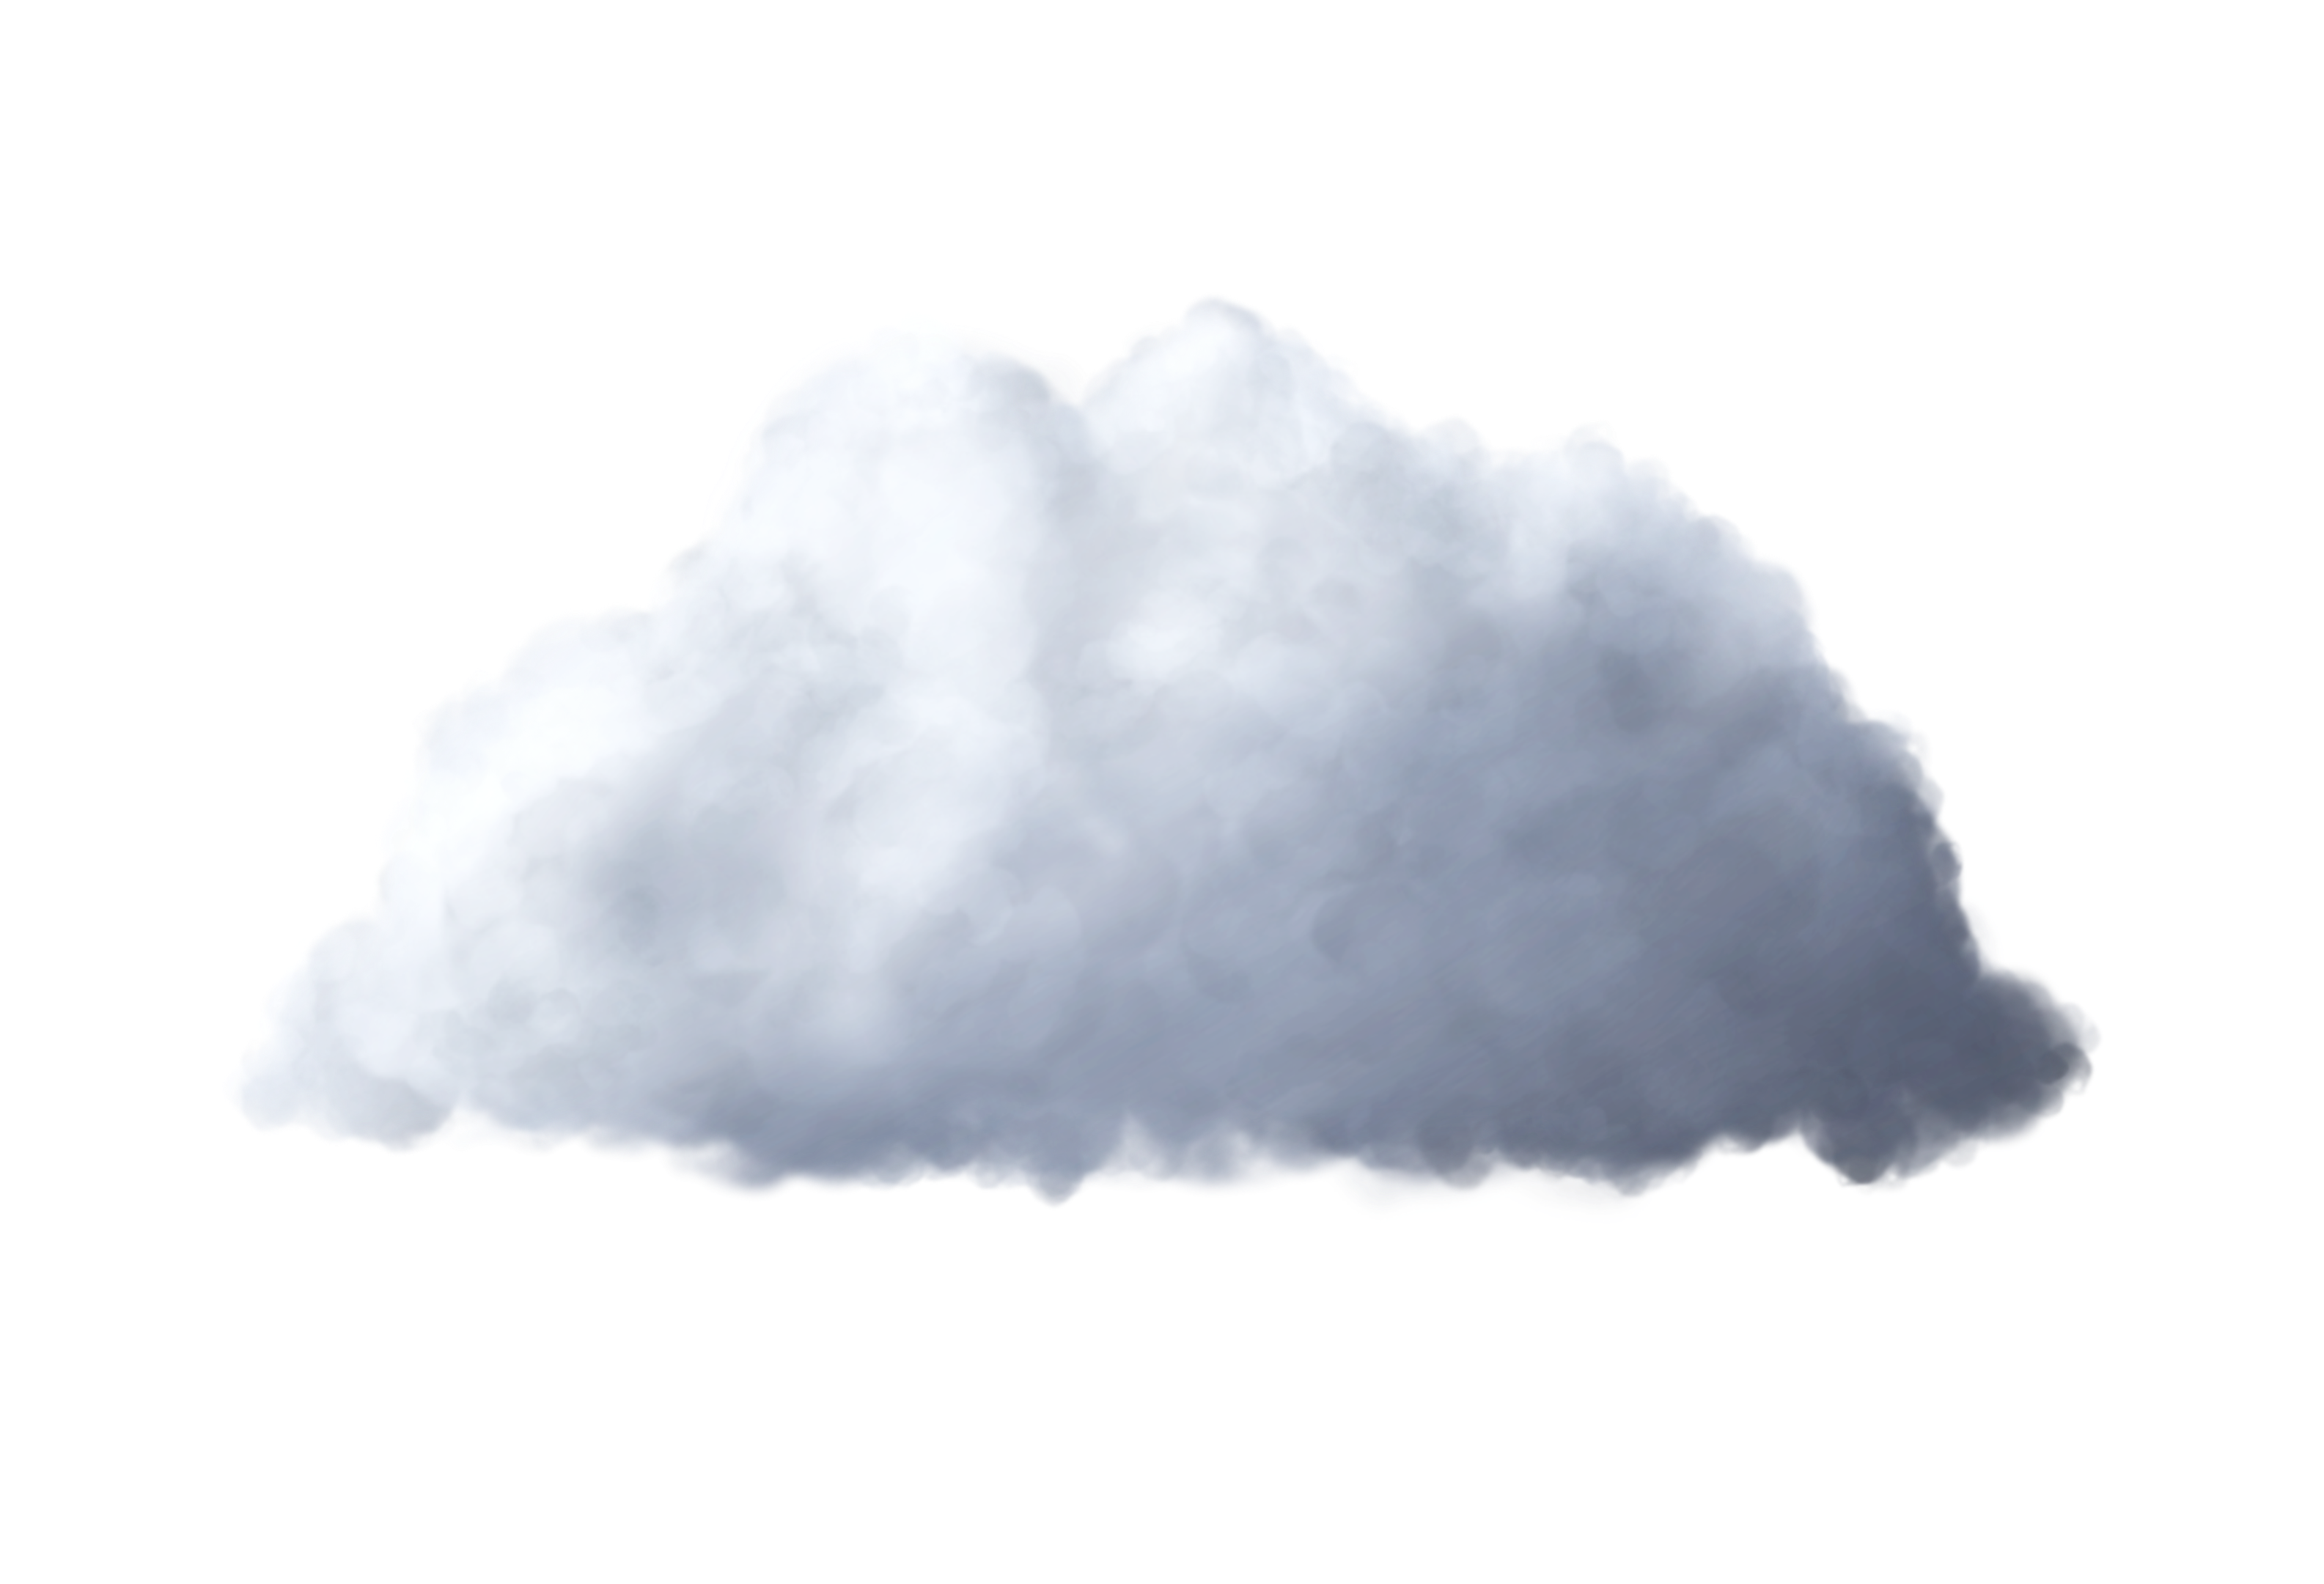 This png is about a white cloud.